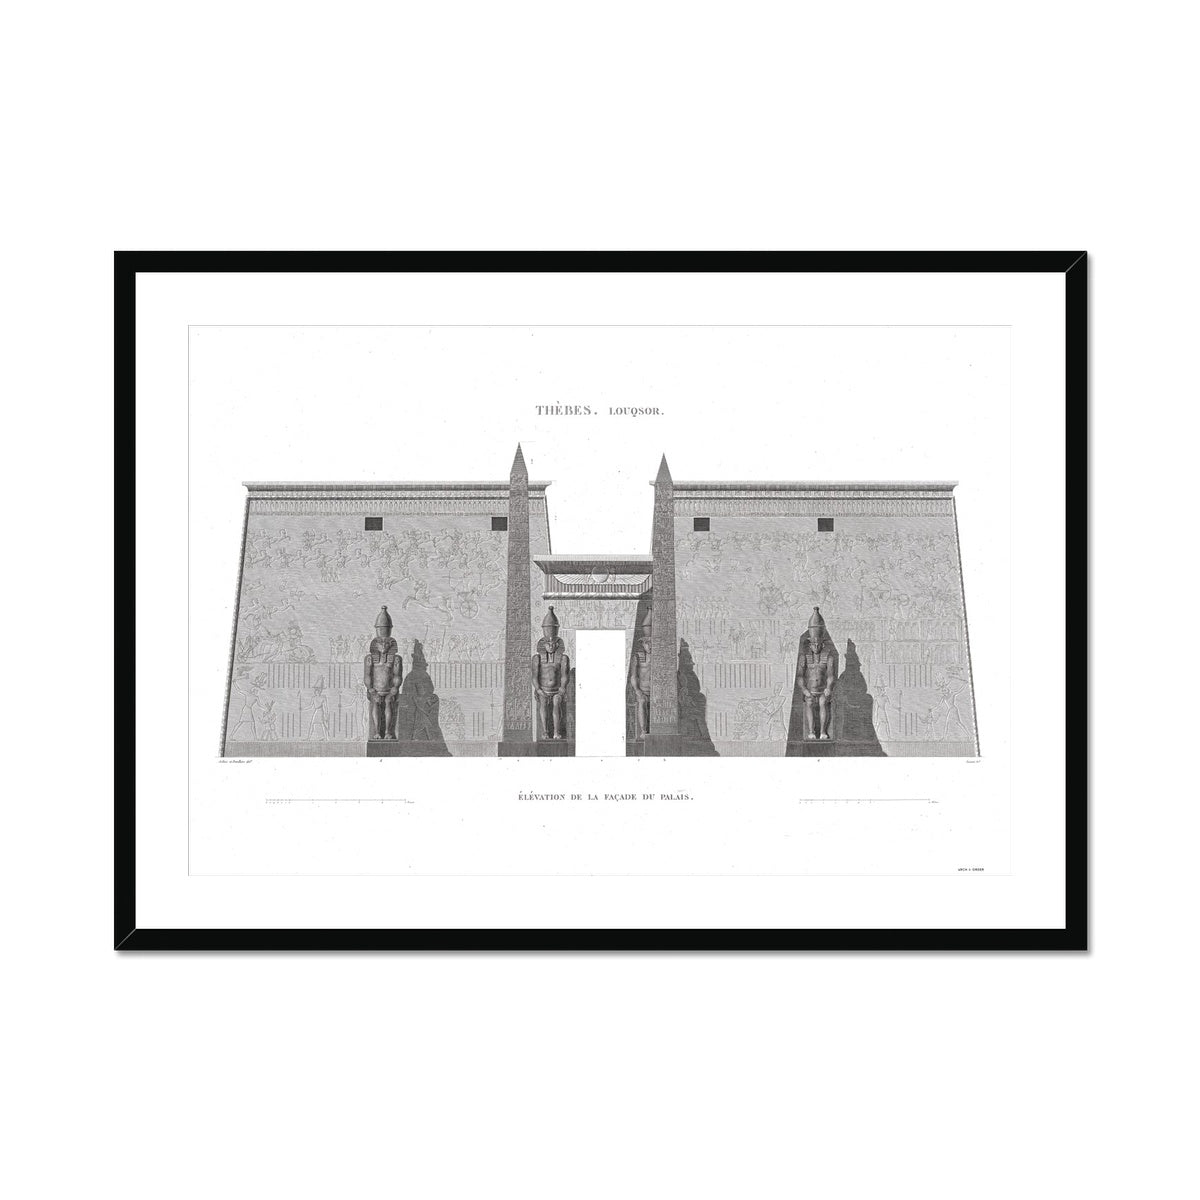 Primary Elevation of the Palace - Luxor - Thebes Egypt -  Framed & Mounted Print